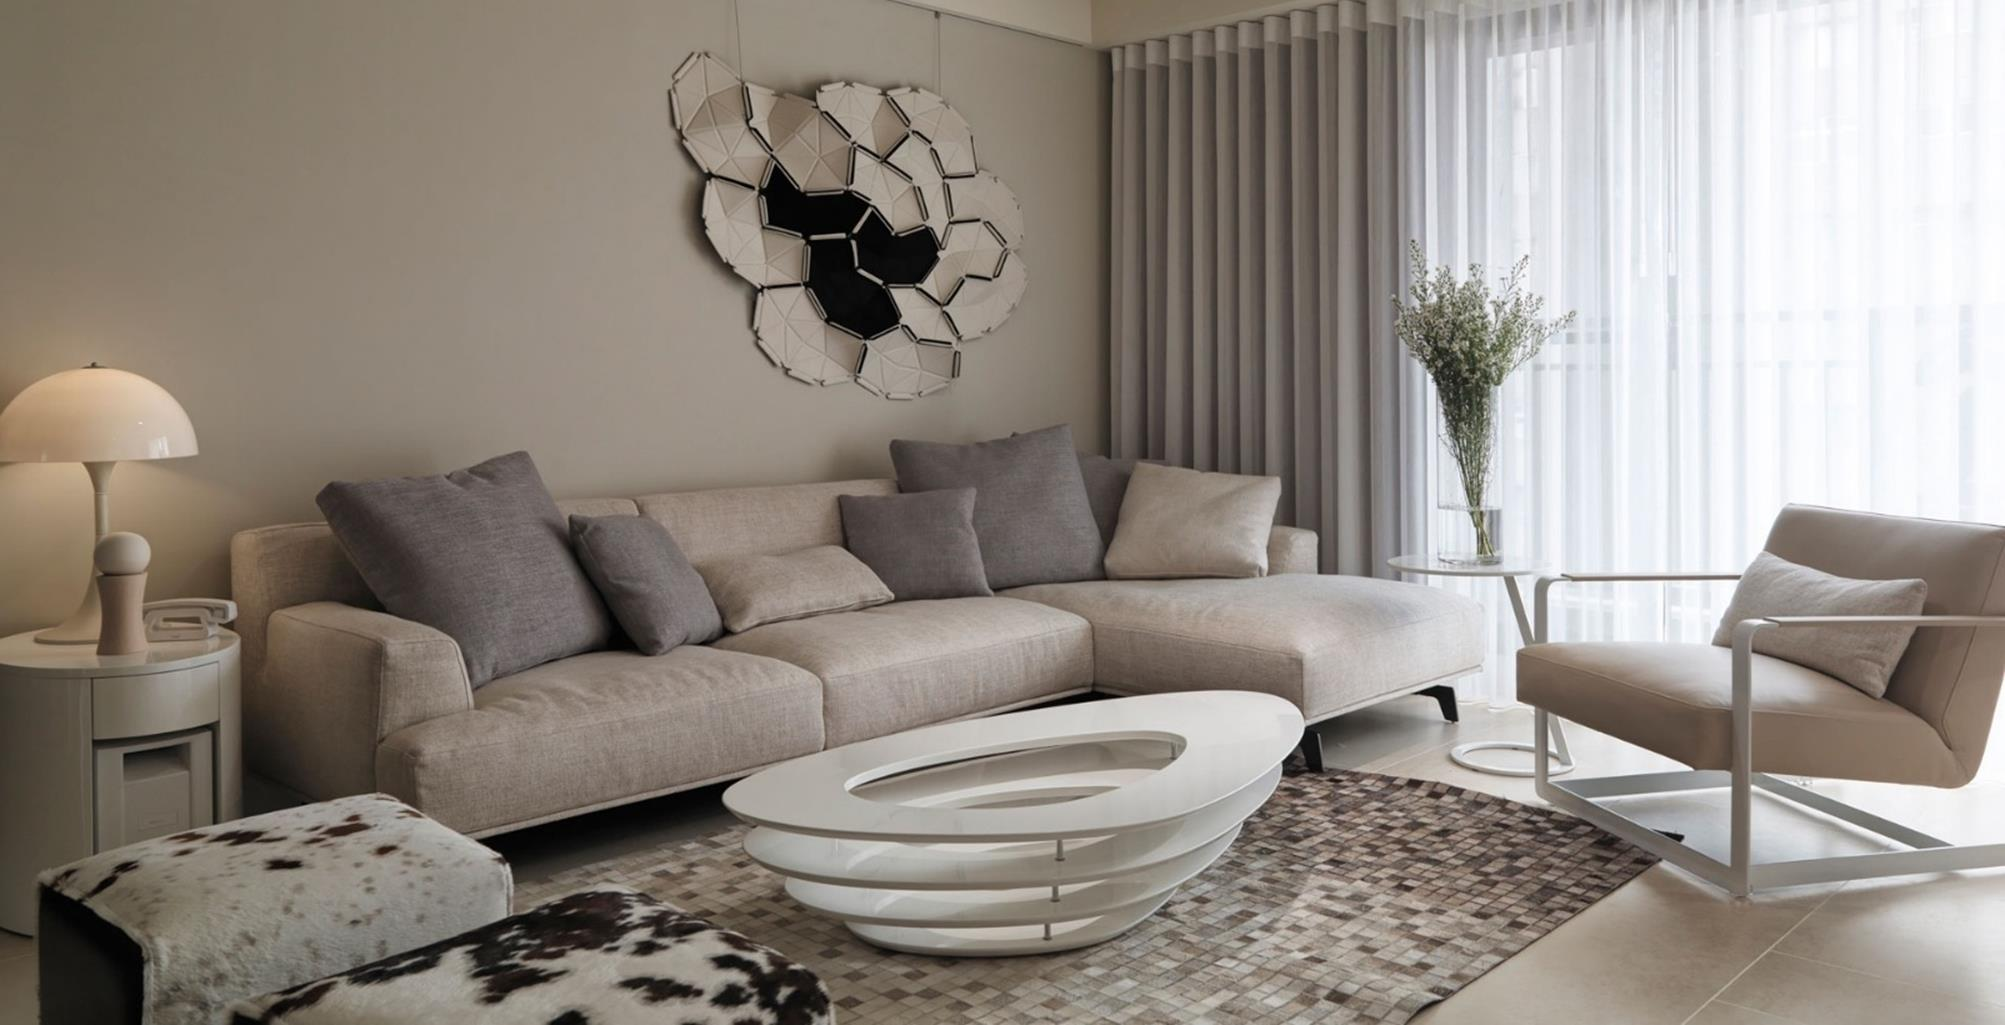 Best Neutral Paint Colors For Living Room 38